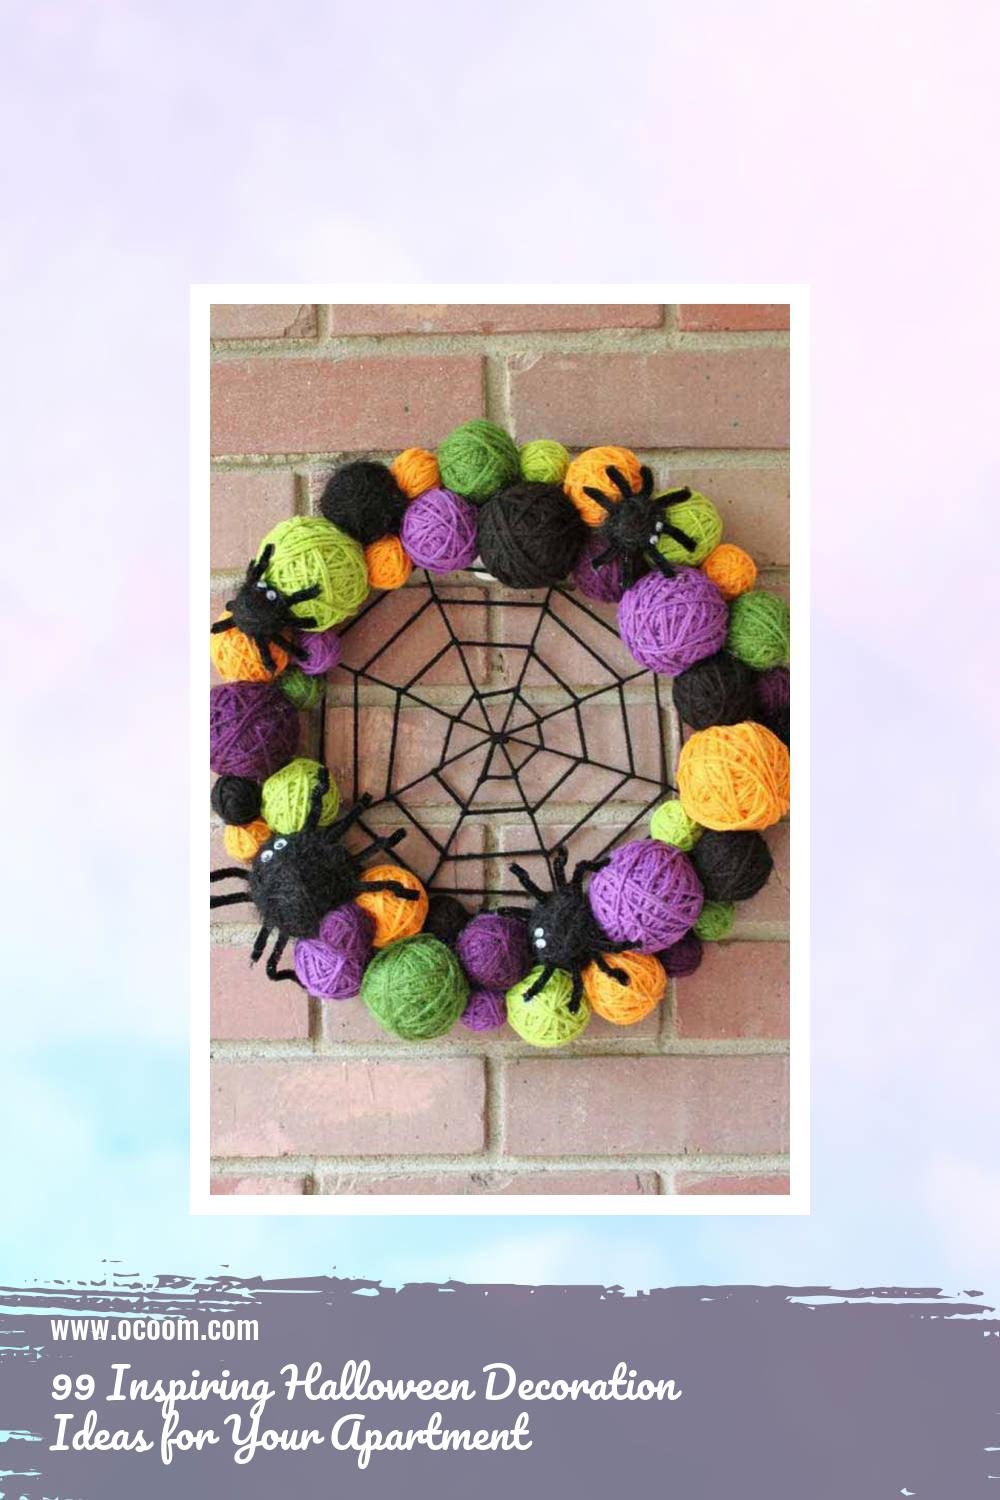 99 Inspiring Halloween Decoration Ideas for Your Apartment 36